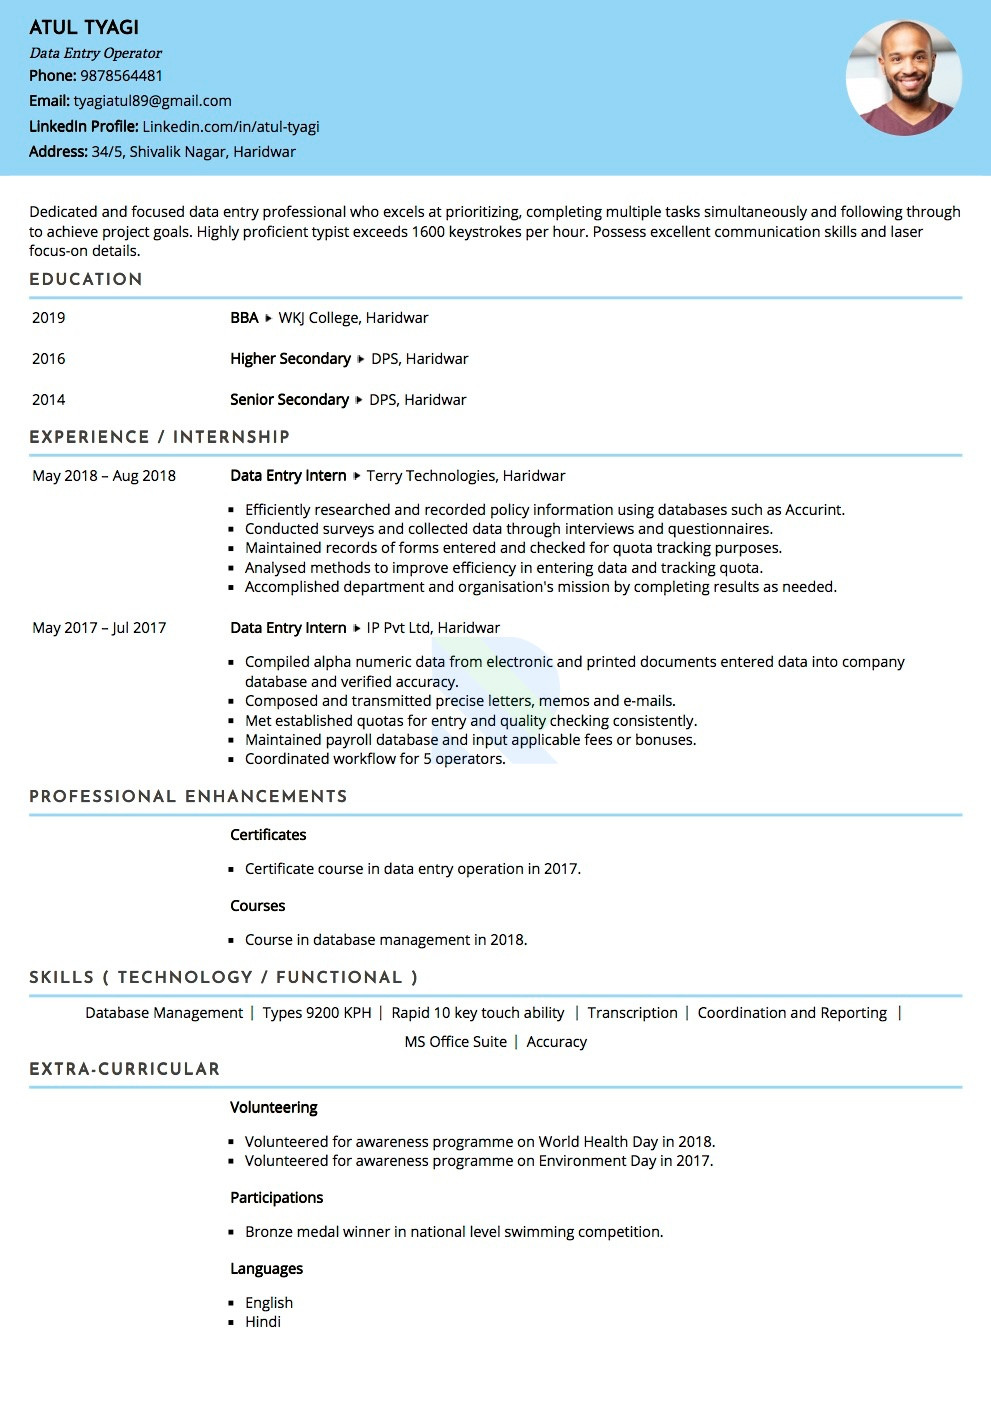 experience resume format for data entryml